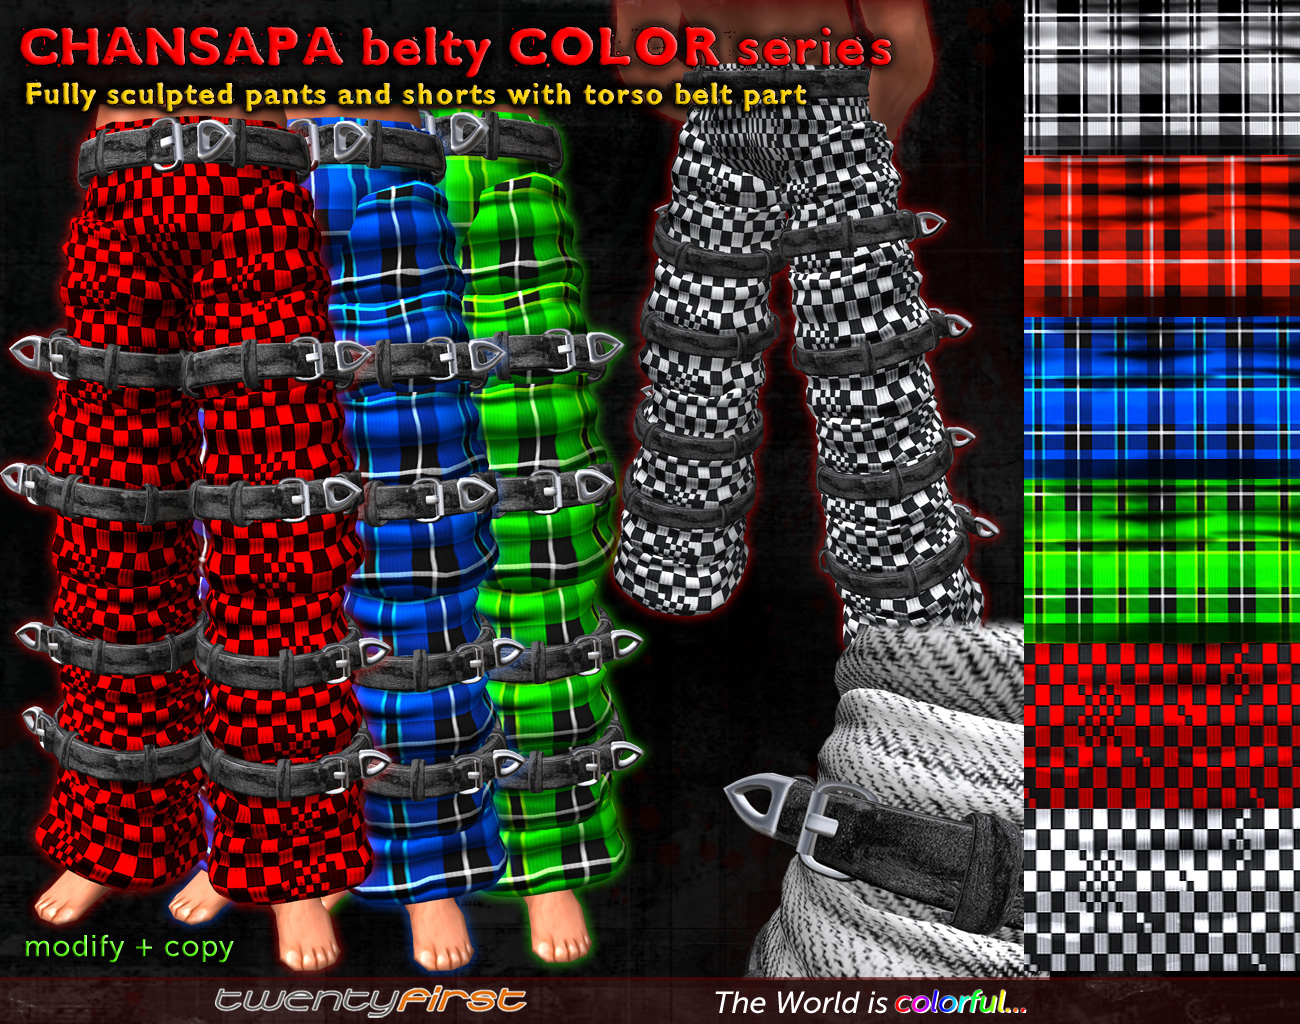 CHANSAPA-belty-COLOR